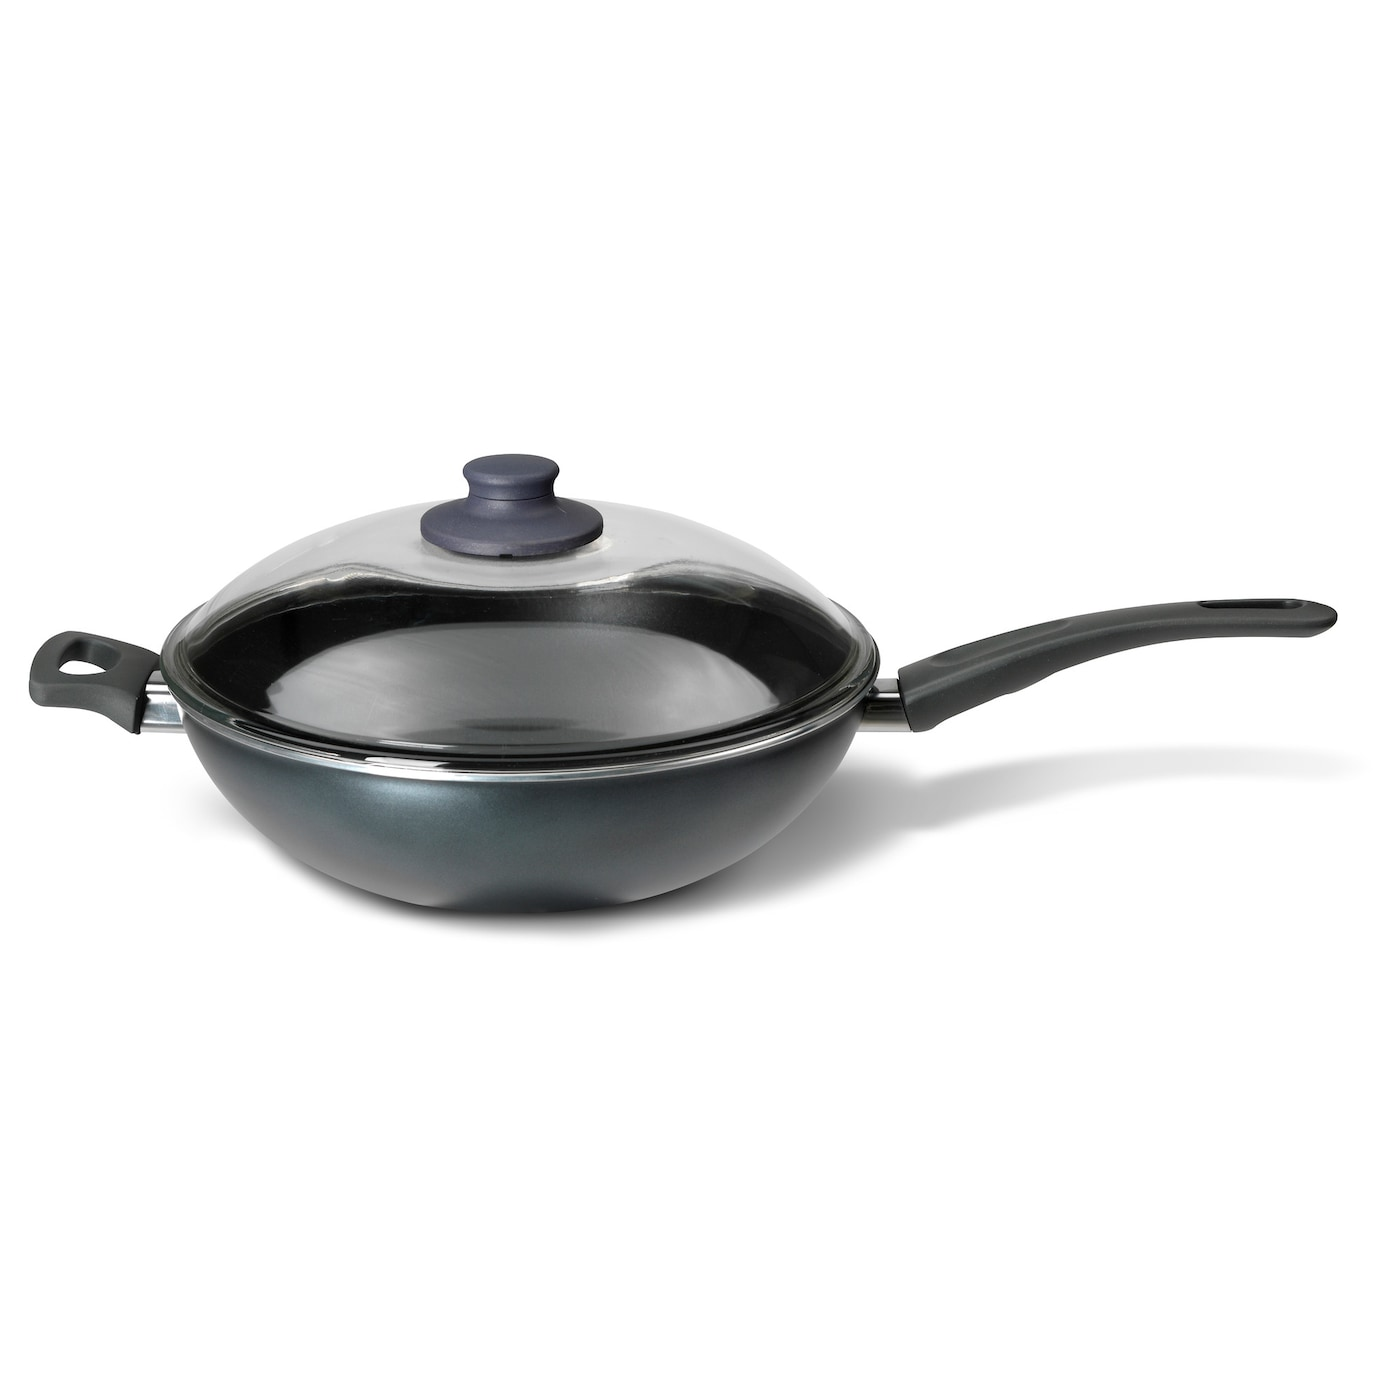 IKEA SKÄNKA wok with lid Comfortable handles make the cookware easy to lift.